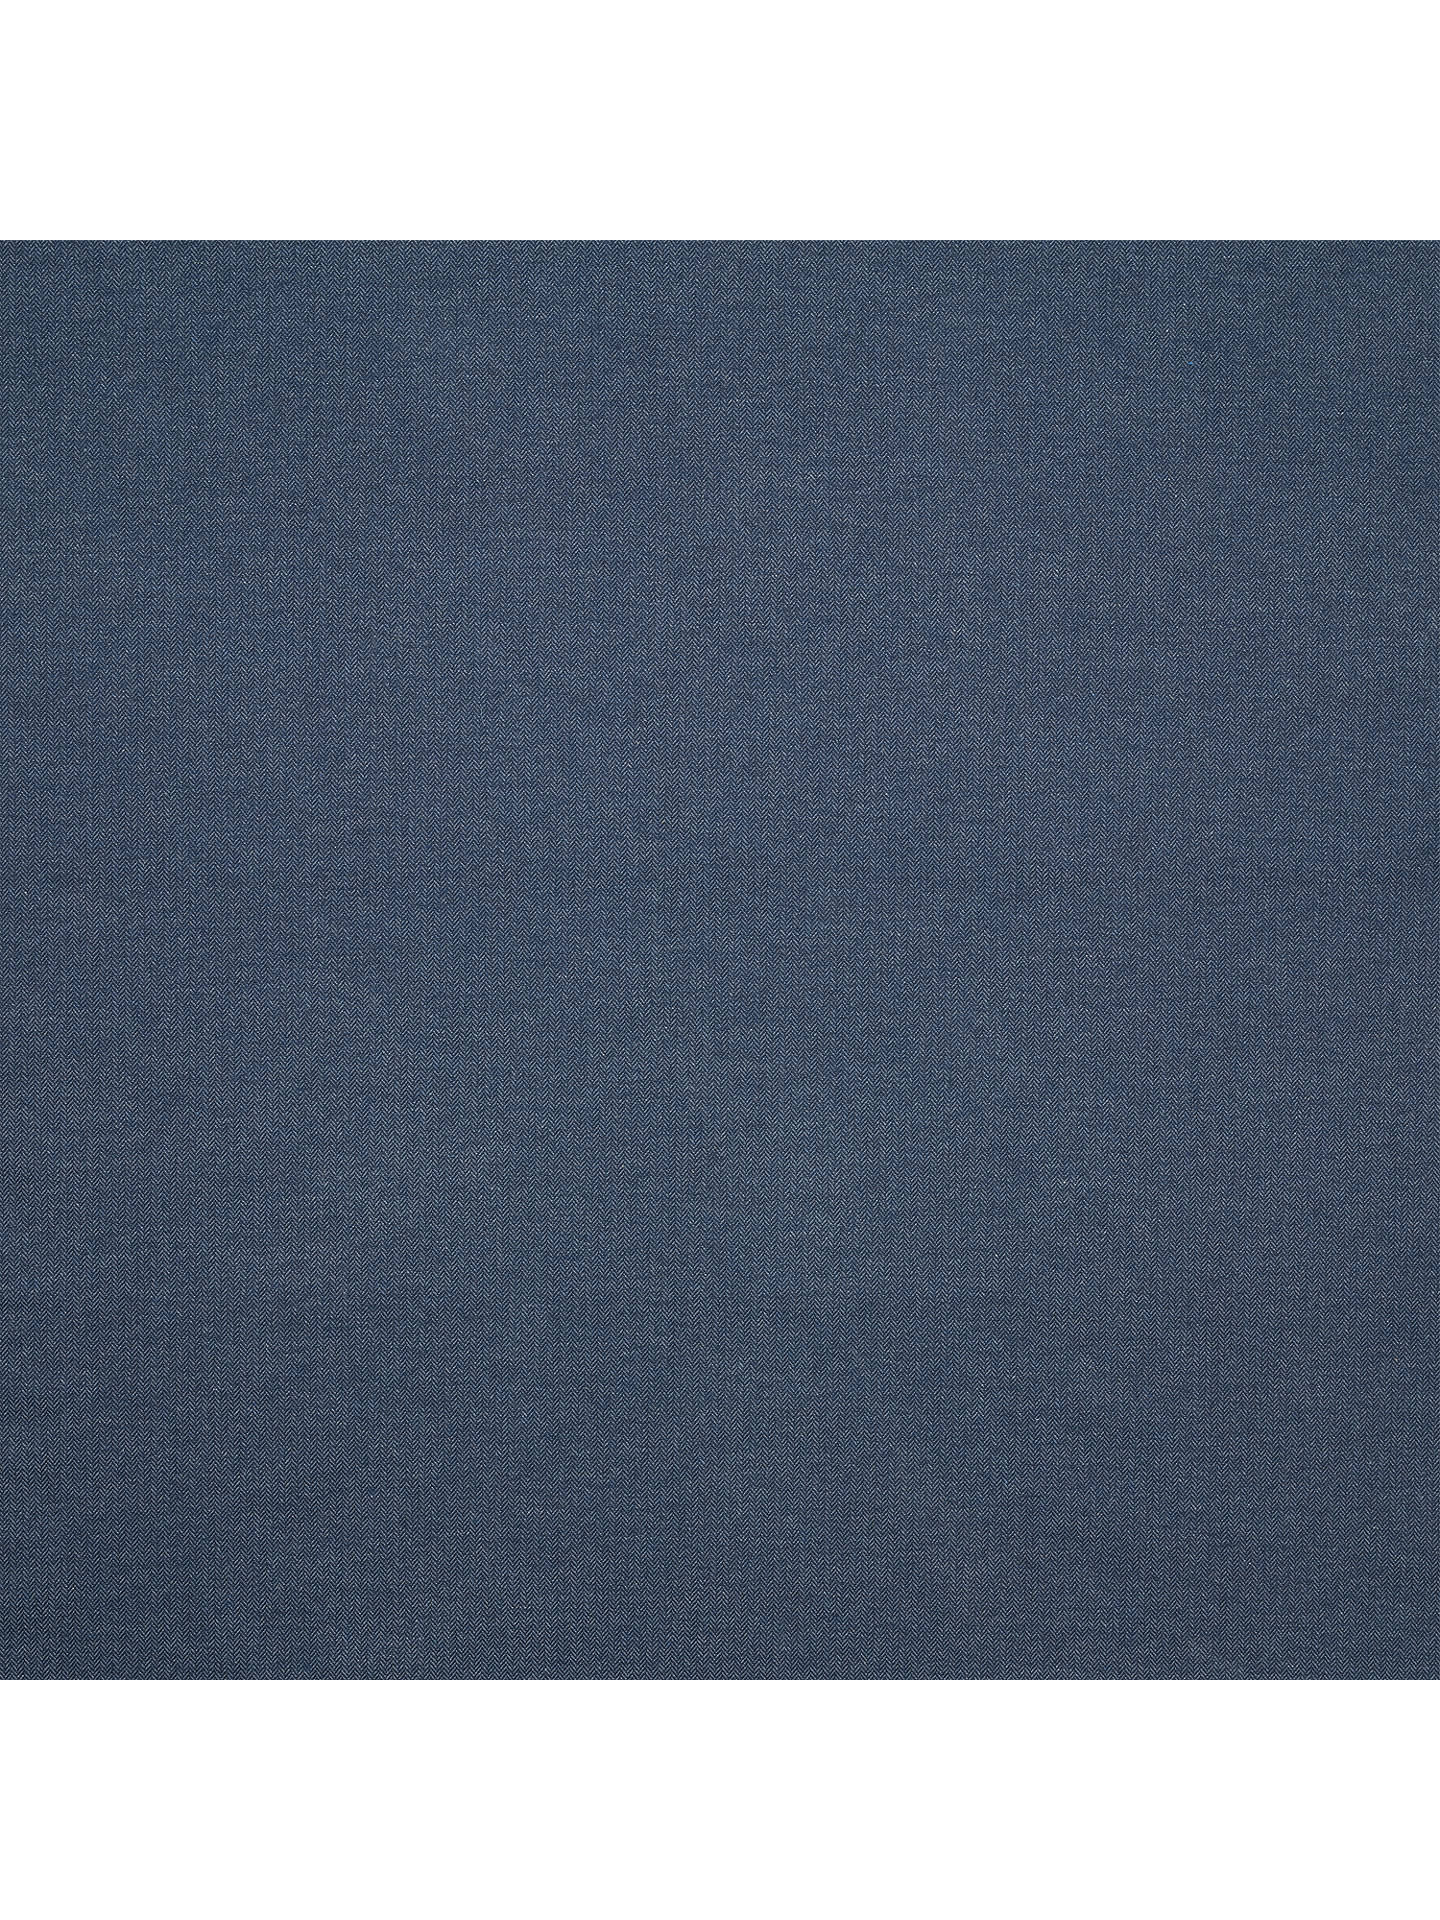 BuyJohn Lewis & Partners Farland Herringbone Fabric, Navy, Price Band C Online at johnlewis.com